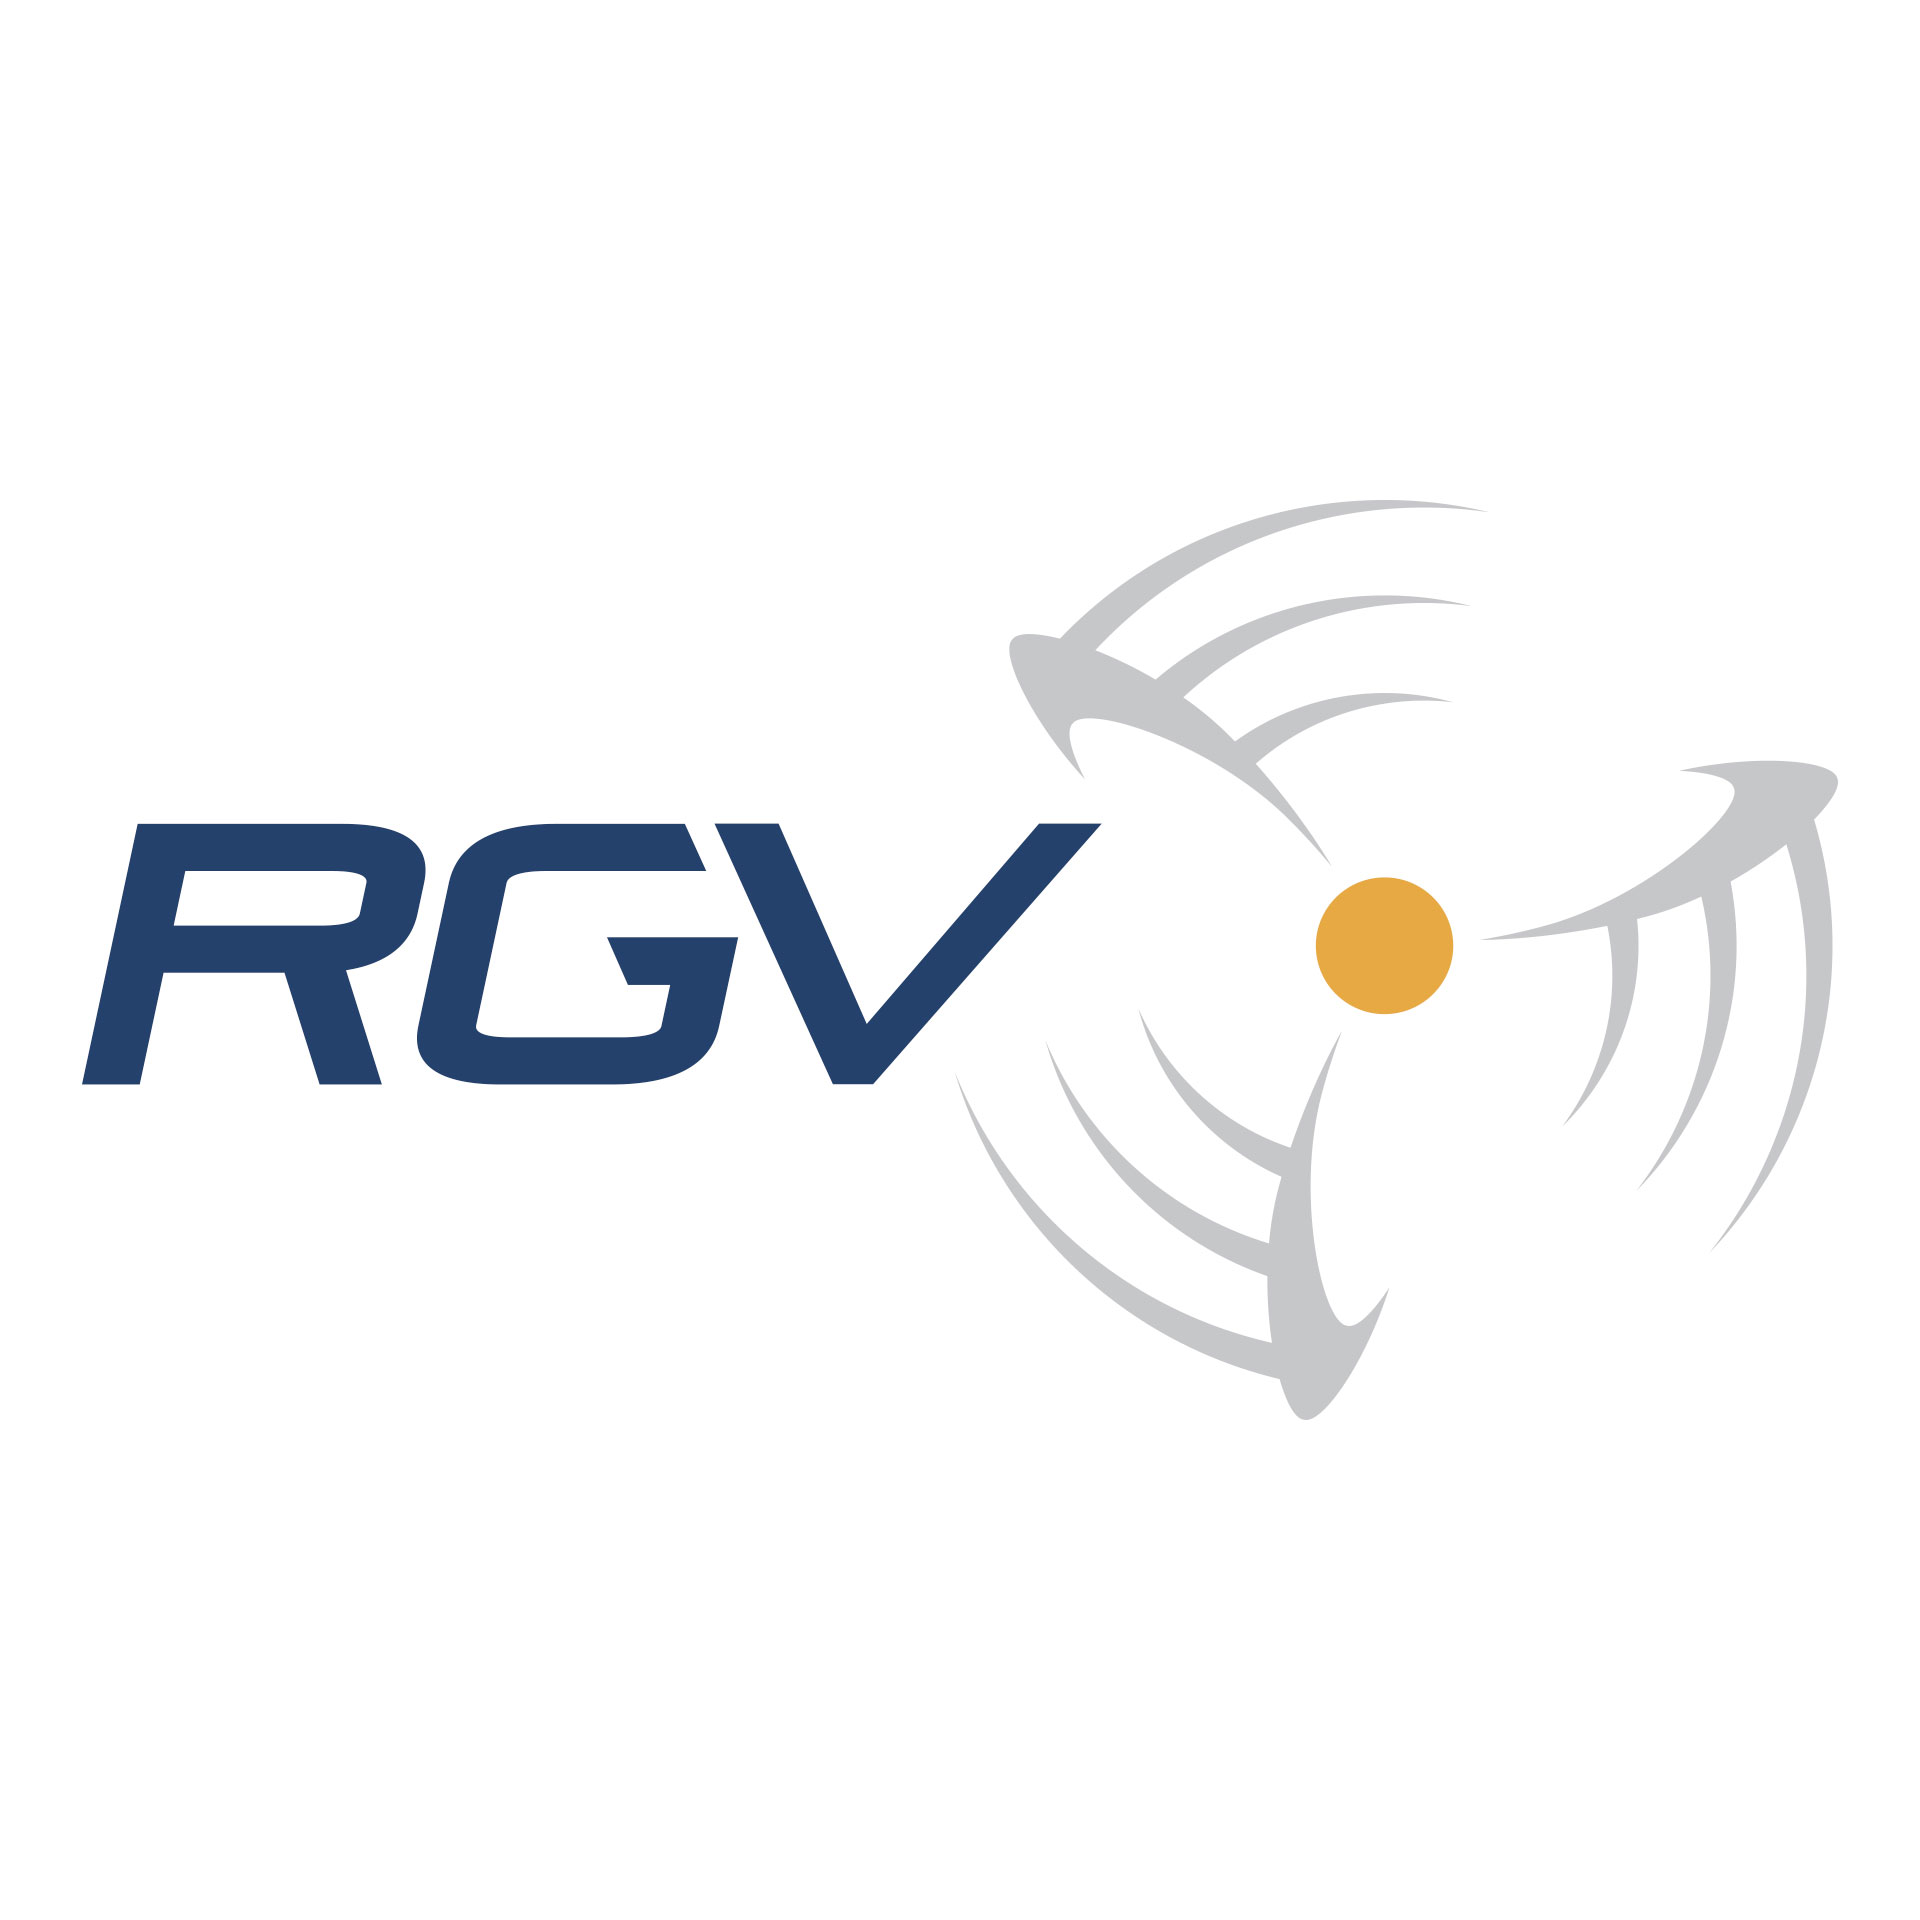 RGV Aviation logo